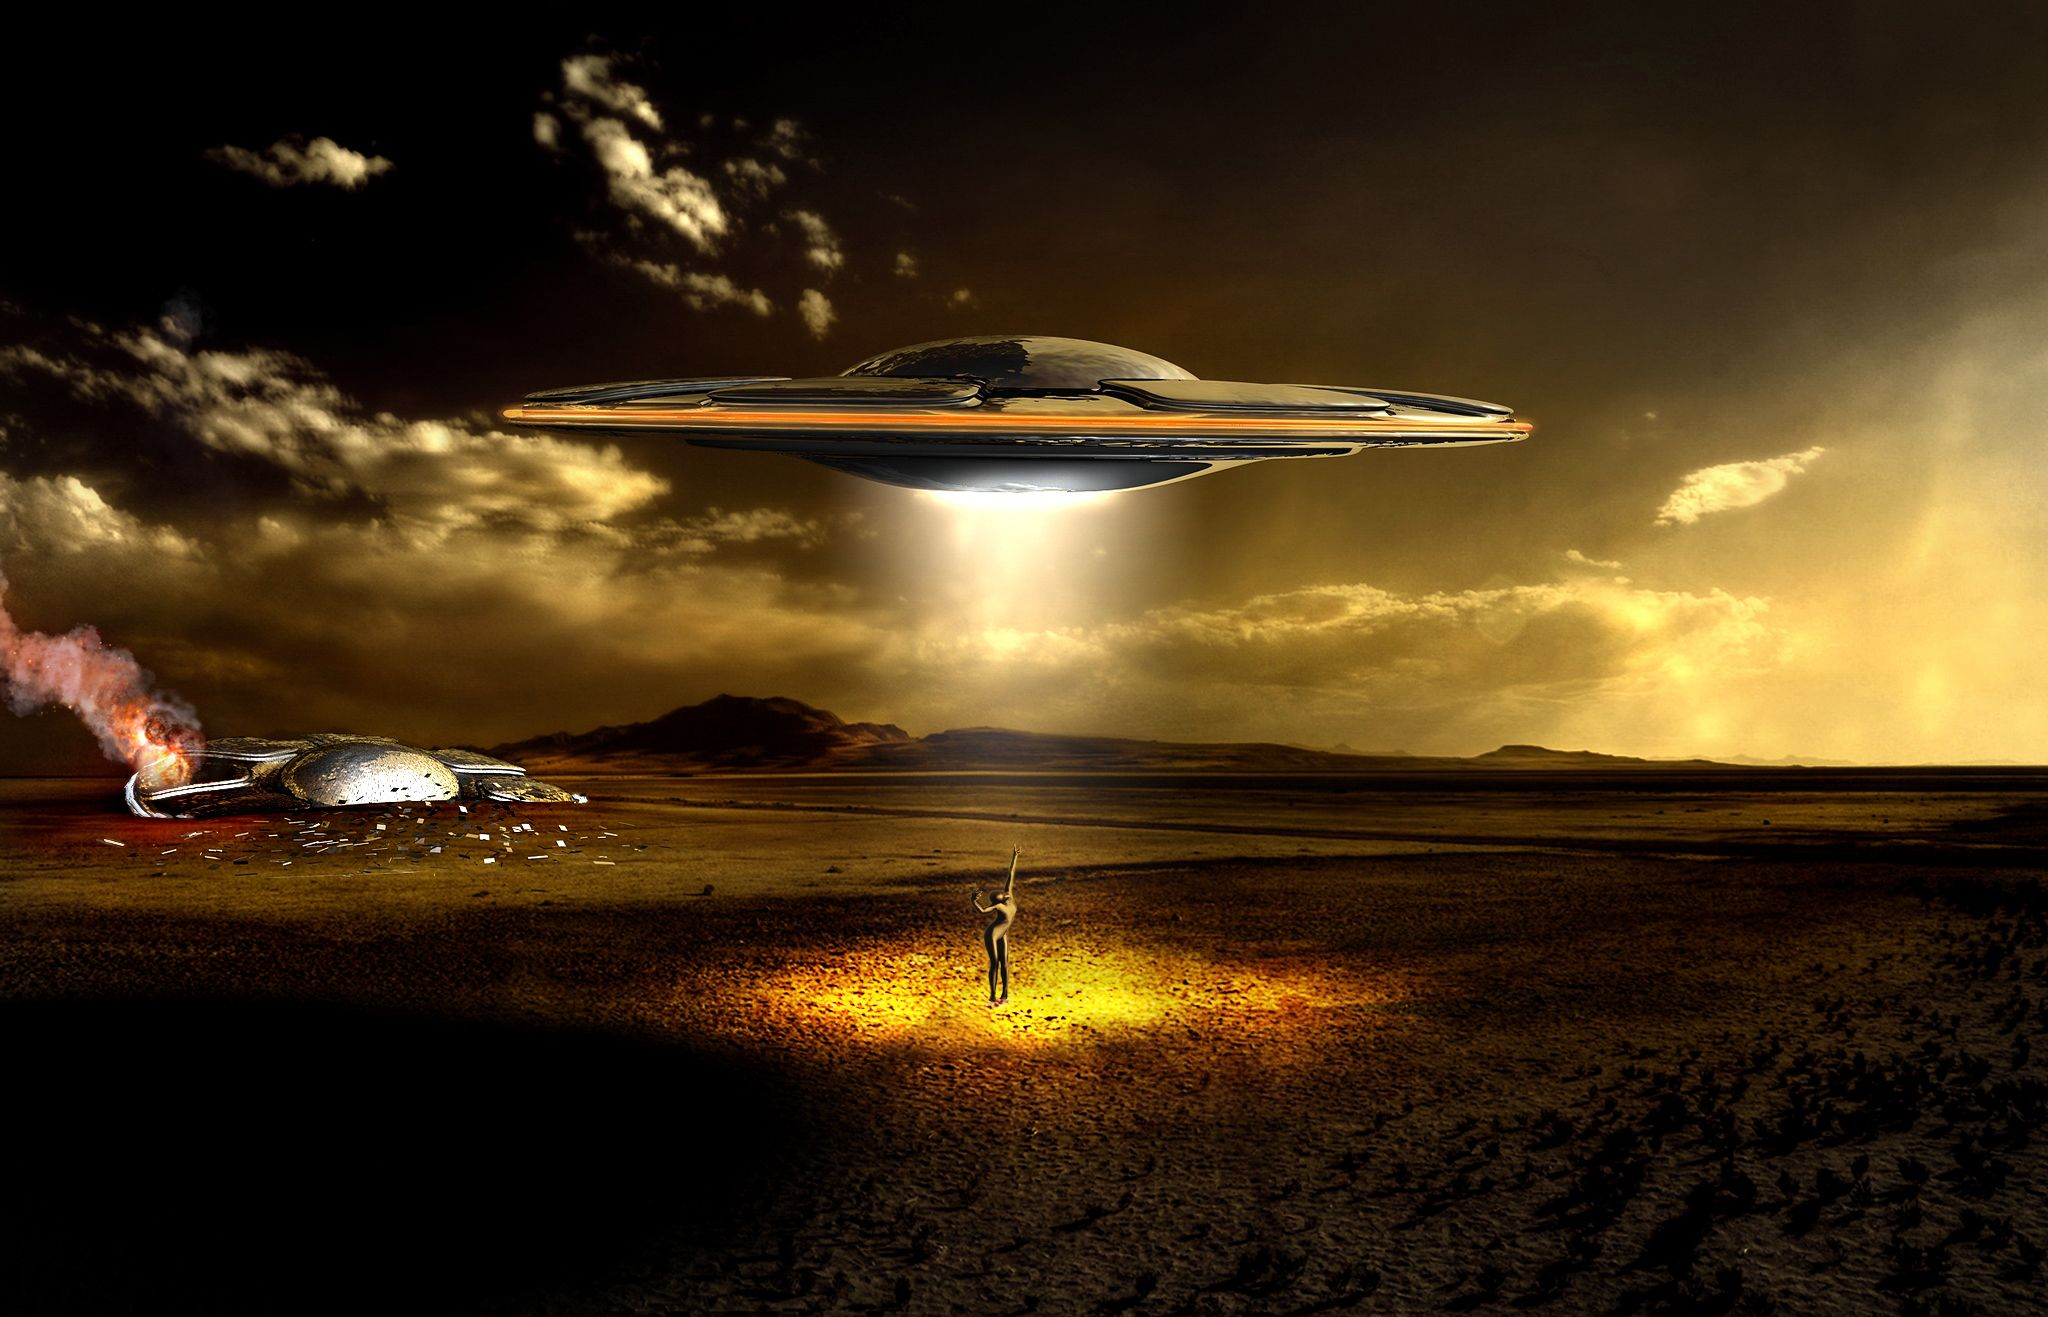 2048x1317 - UFO Wallpapers 22